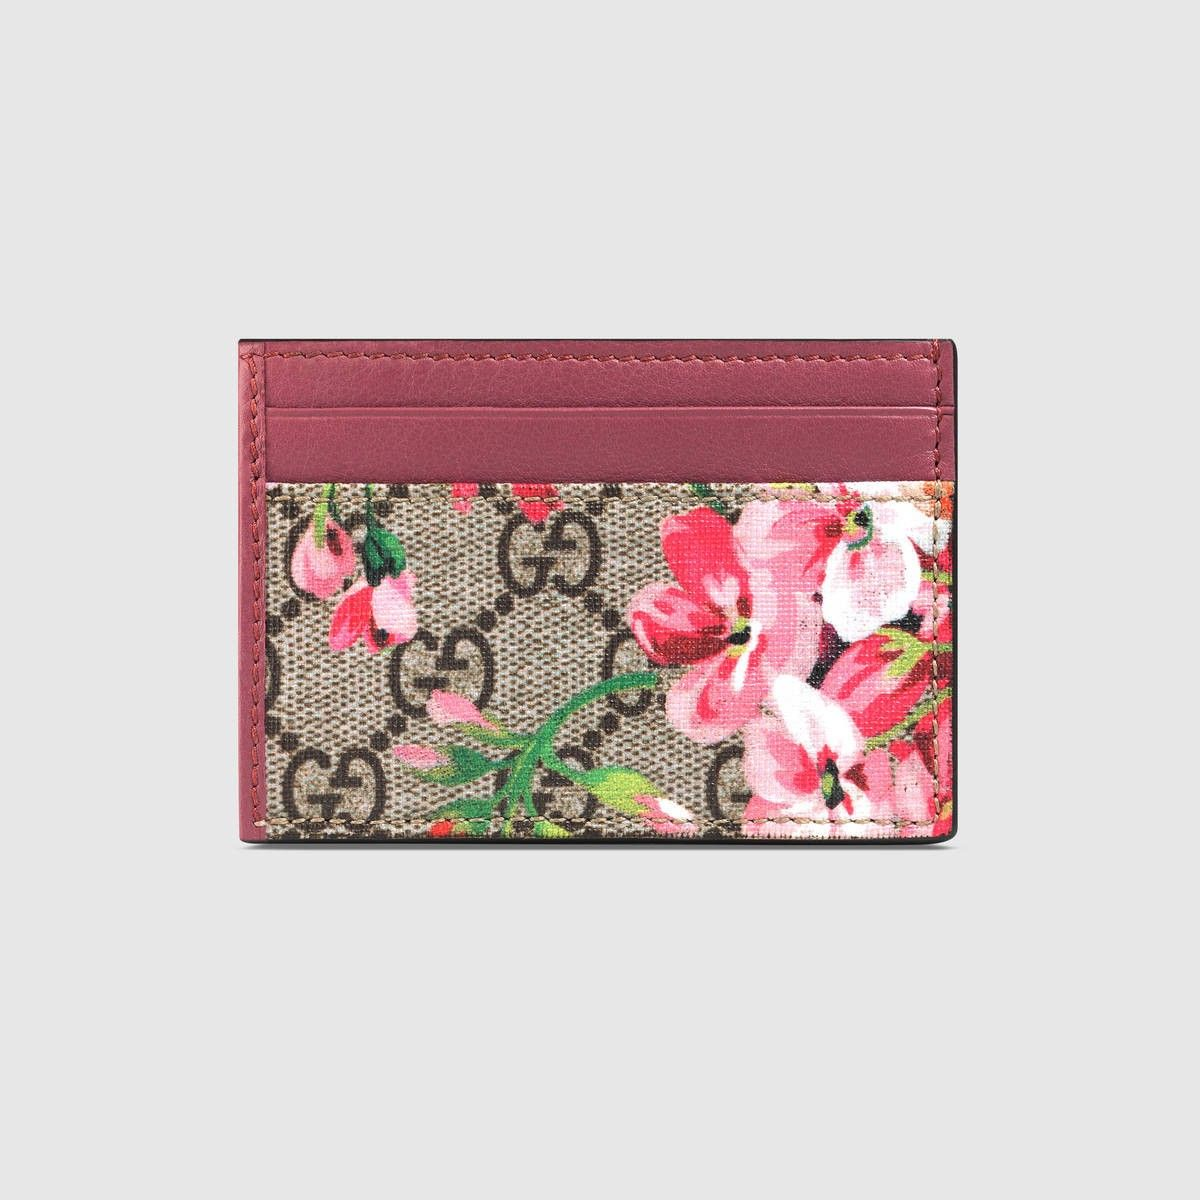 d1d902af8df3 GUCCI Gg Blooms Card Case - Gg Supreme Canvas Blooms.  gucci  bags  leather   canvas